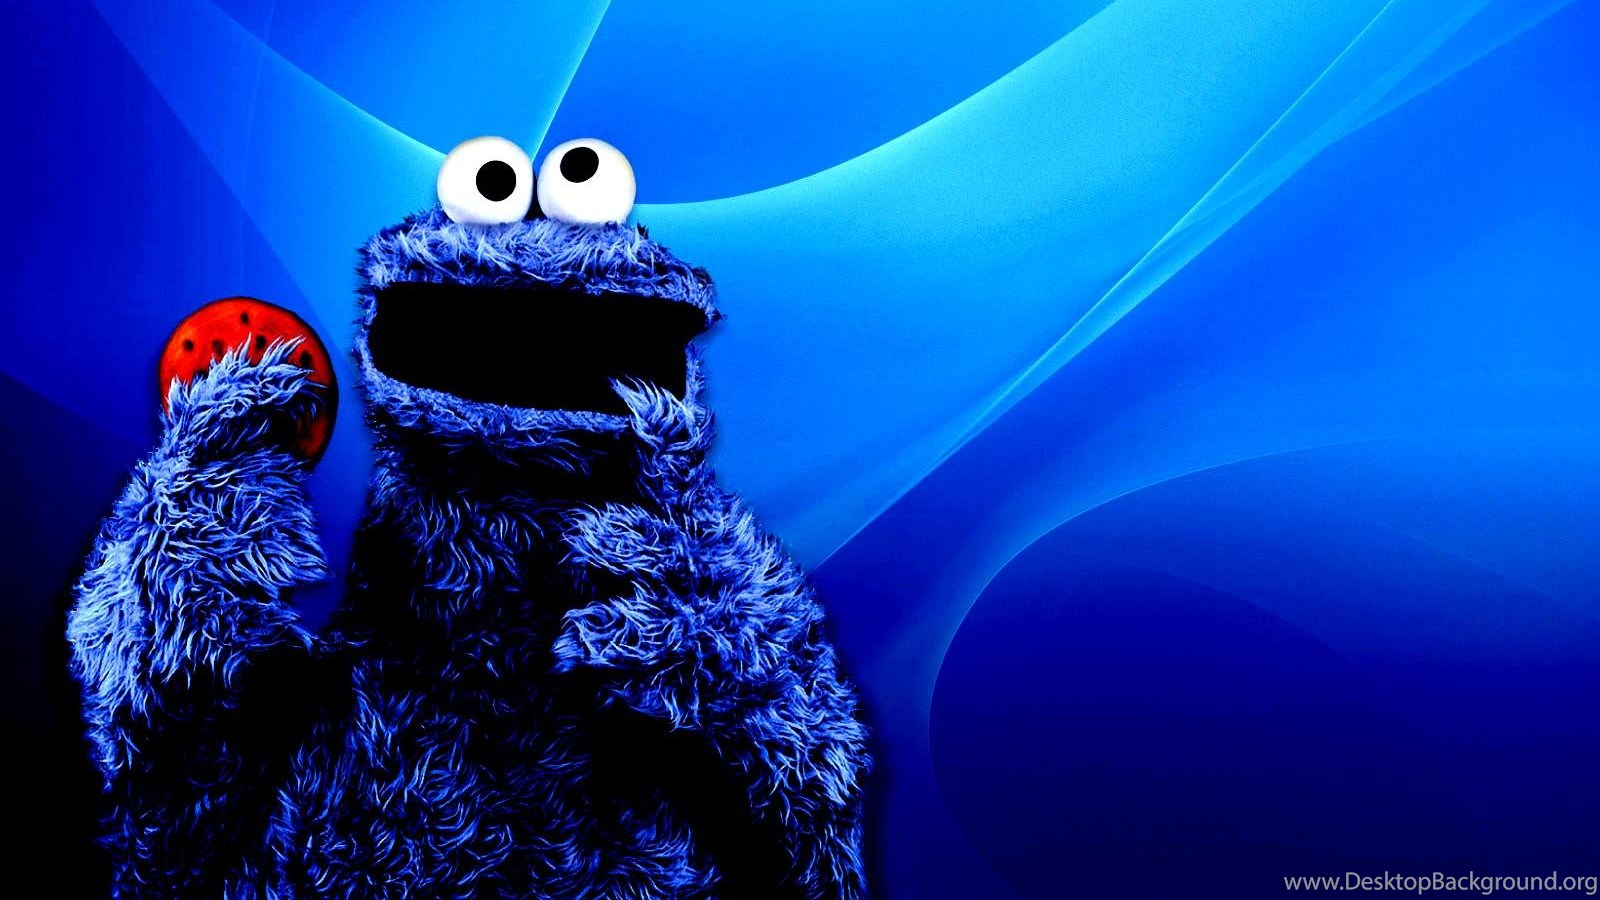 Cookie Monster Wallpapers Simple Luxury Fullwidehdcom Desktop